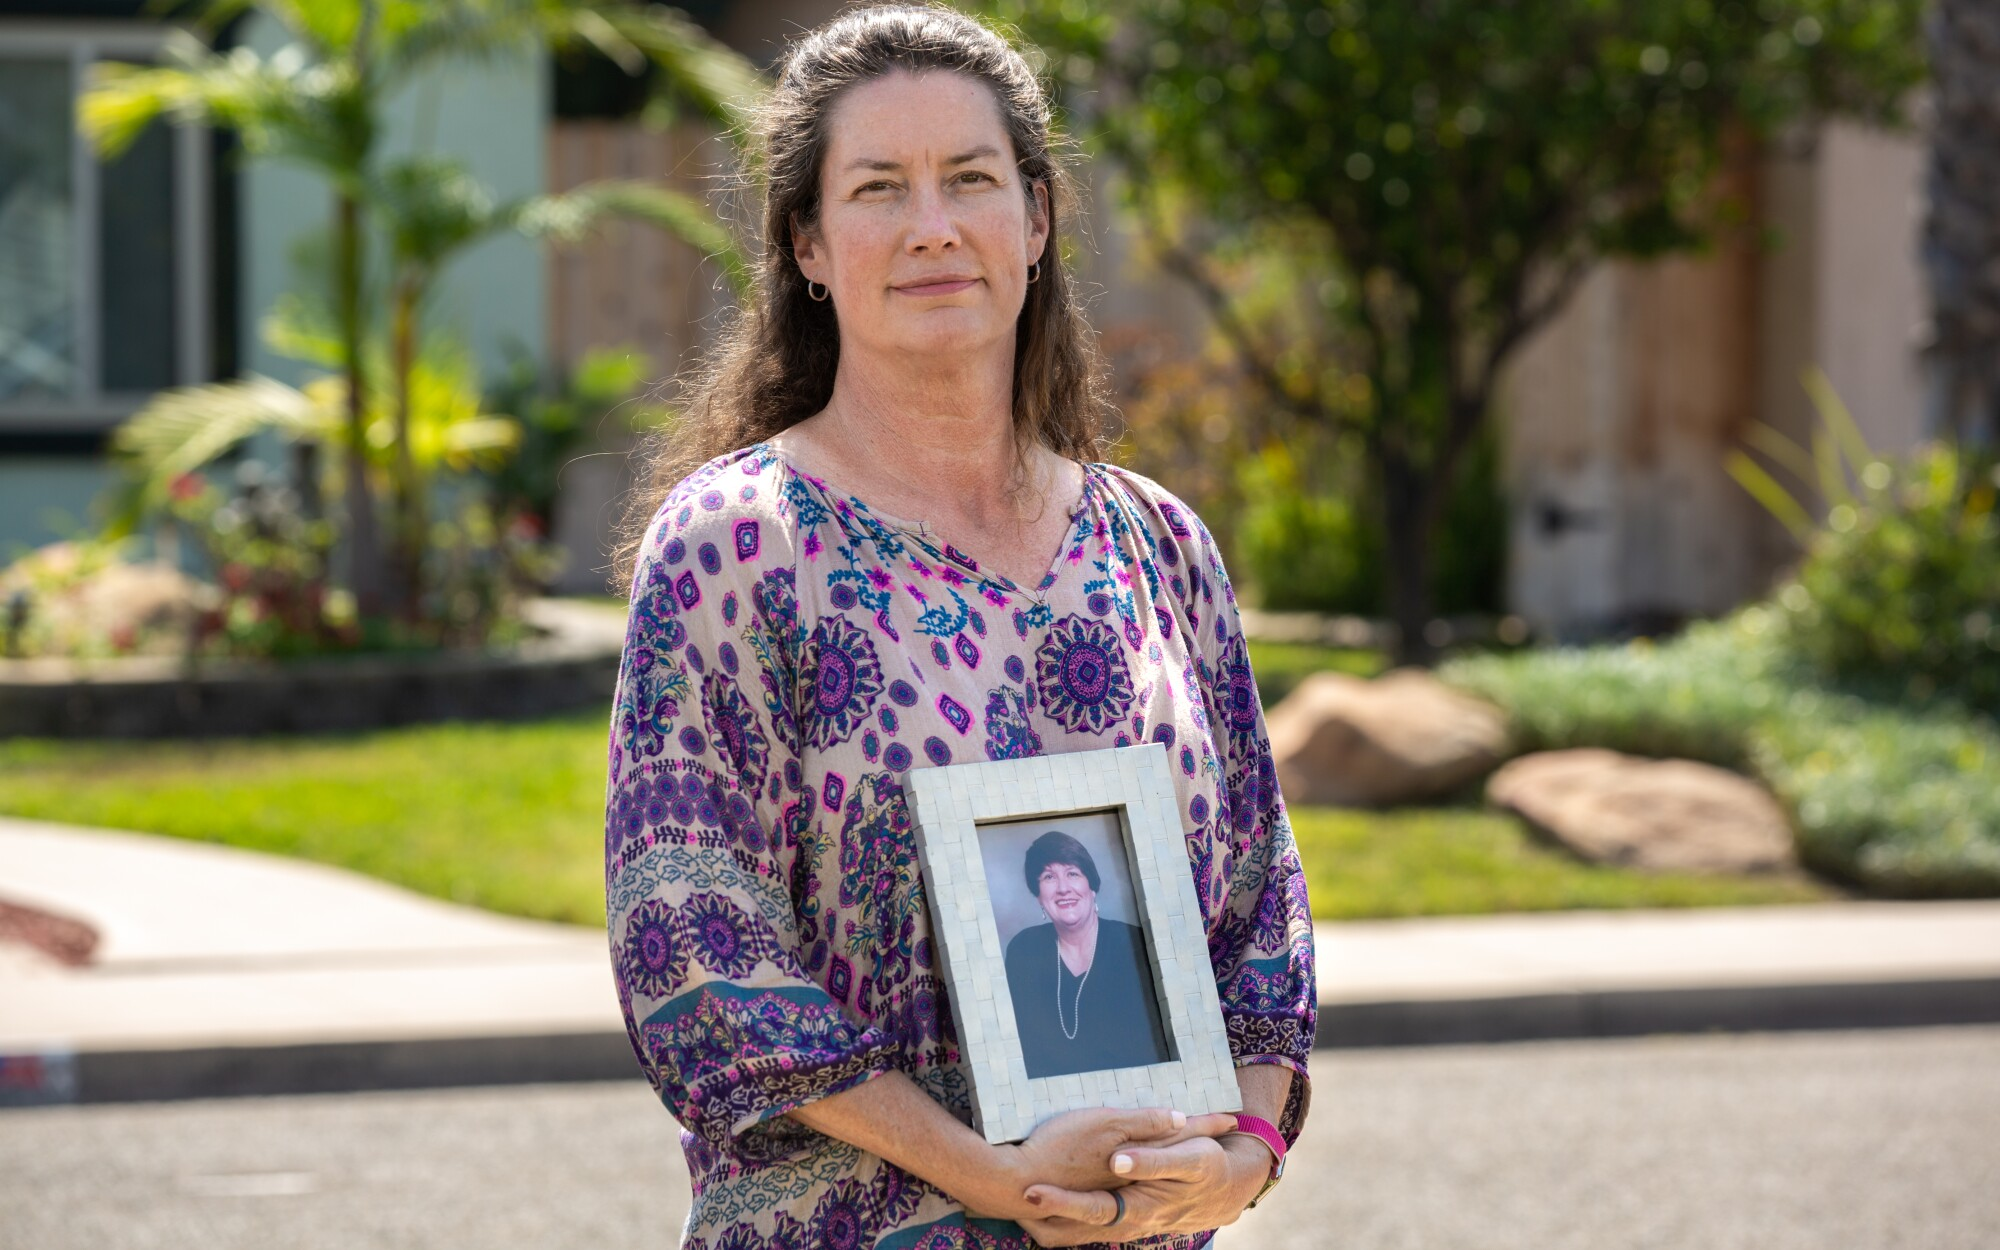 Shannon Svensen holds a photograph of her mother, Modena Svensen in front of their home in Chula Vista.